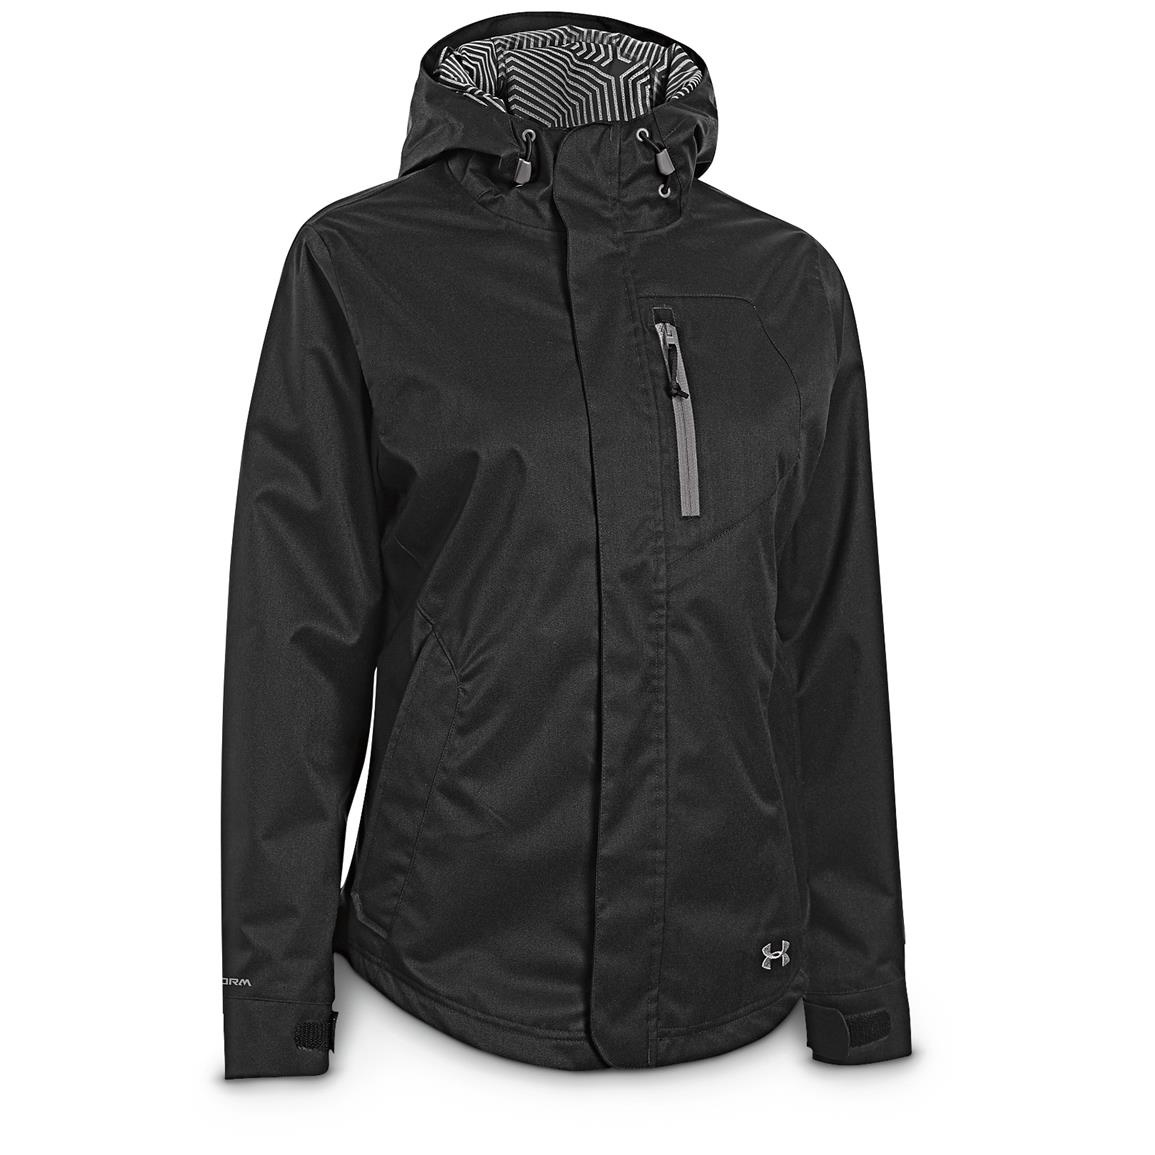 Under Armour Under Armour - Women's Sienna 3 in 1 Jacket